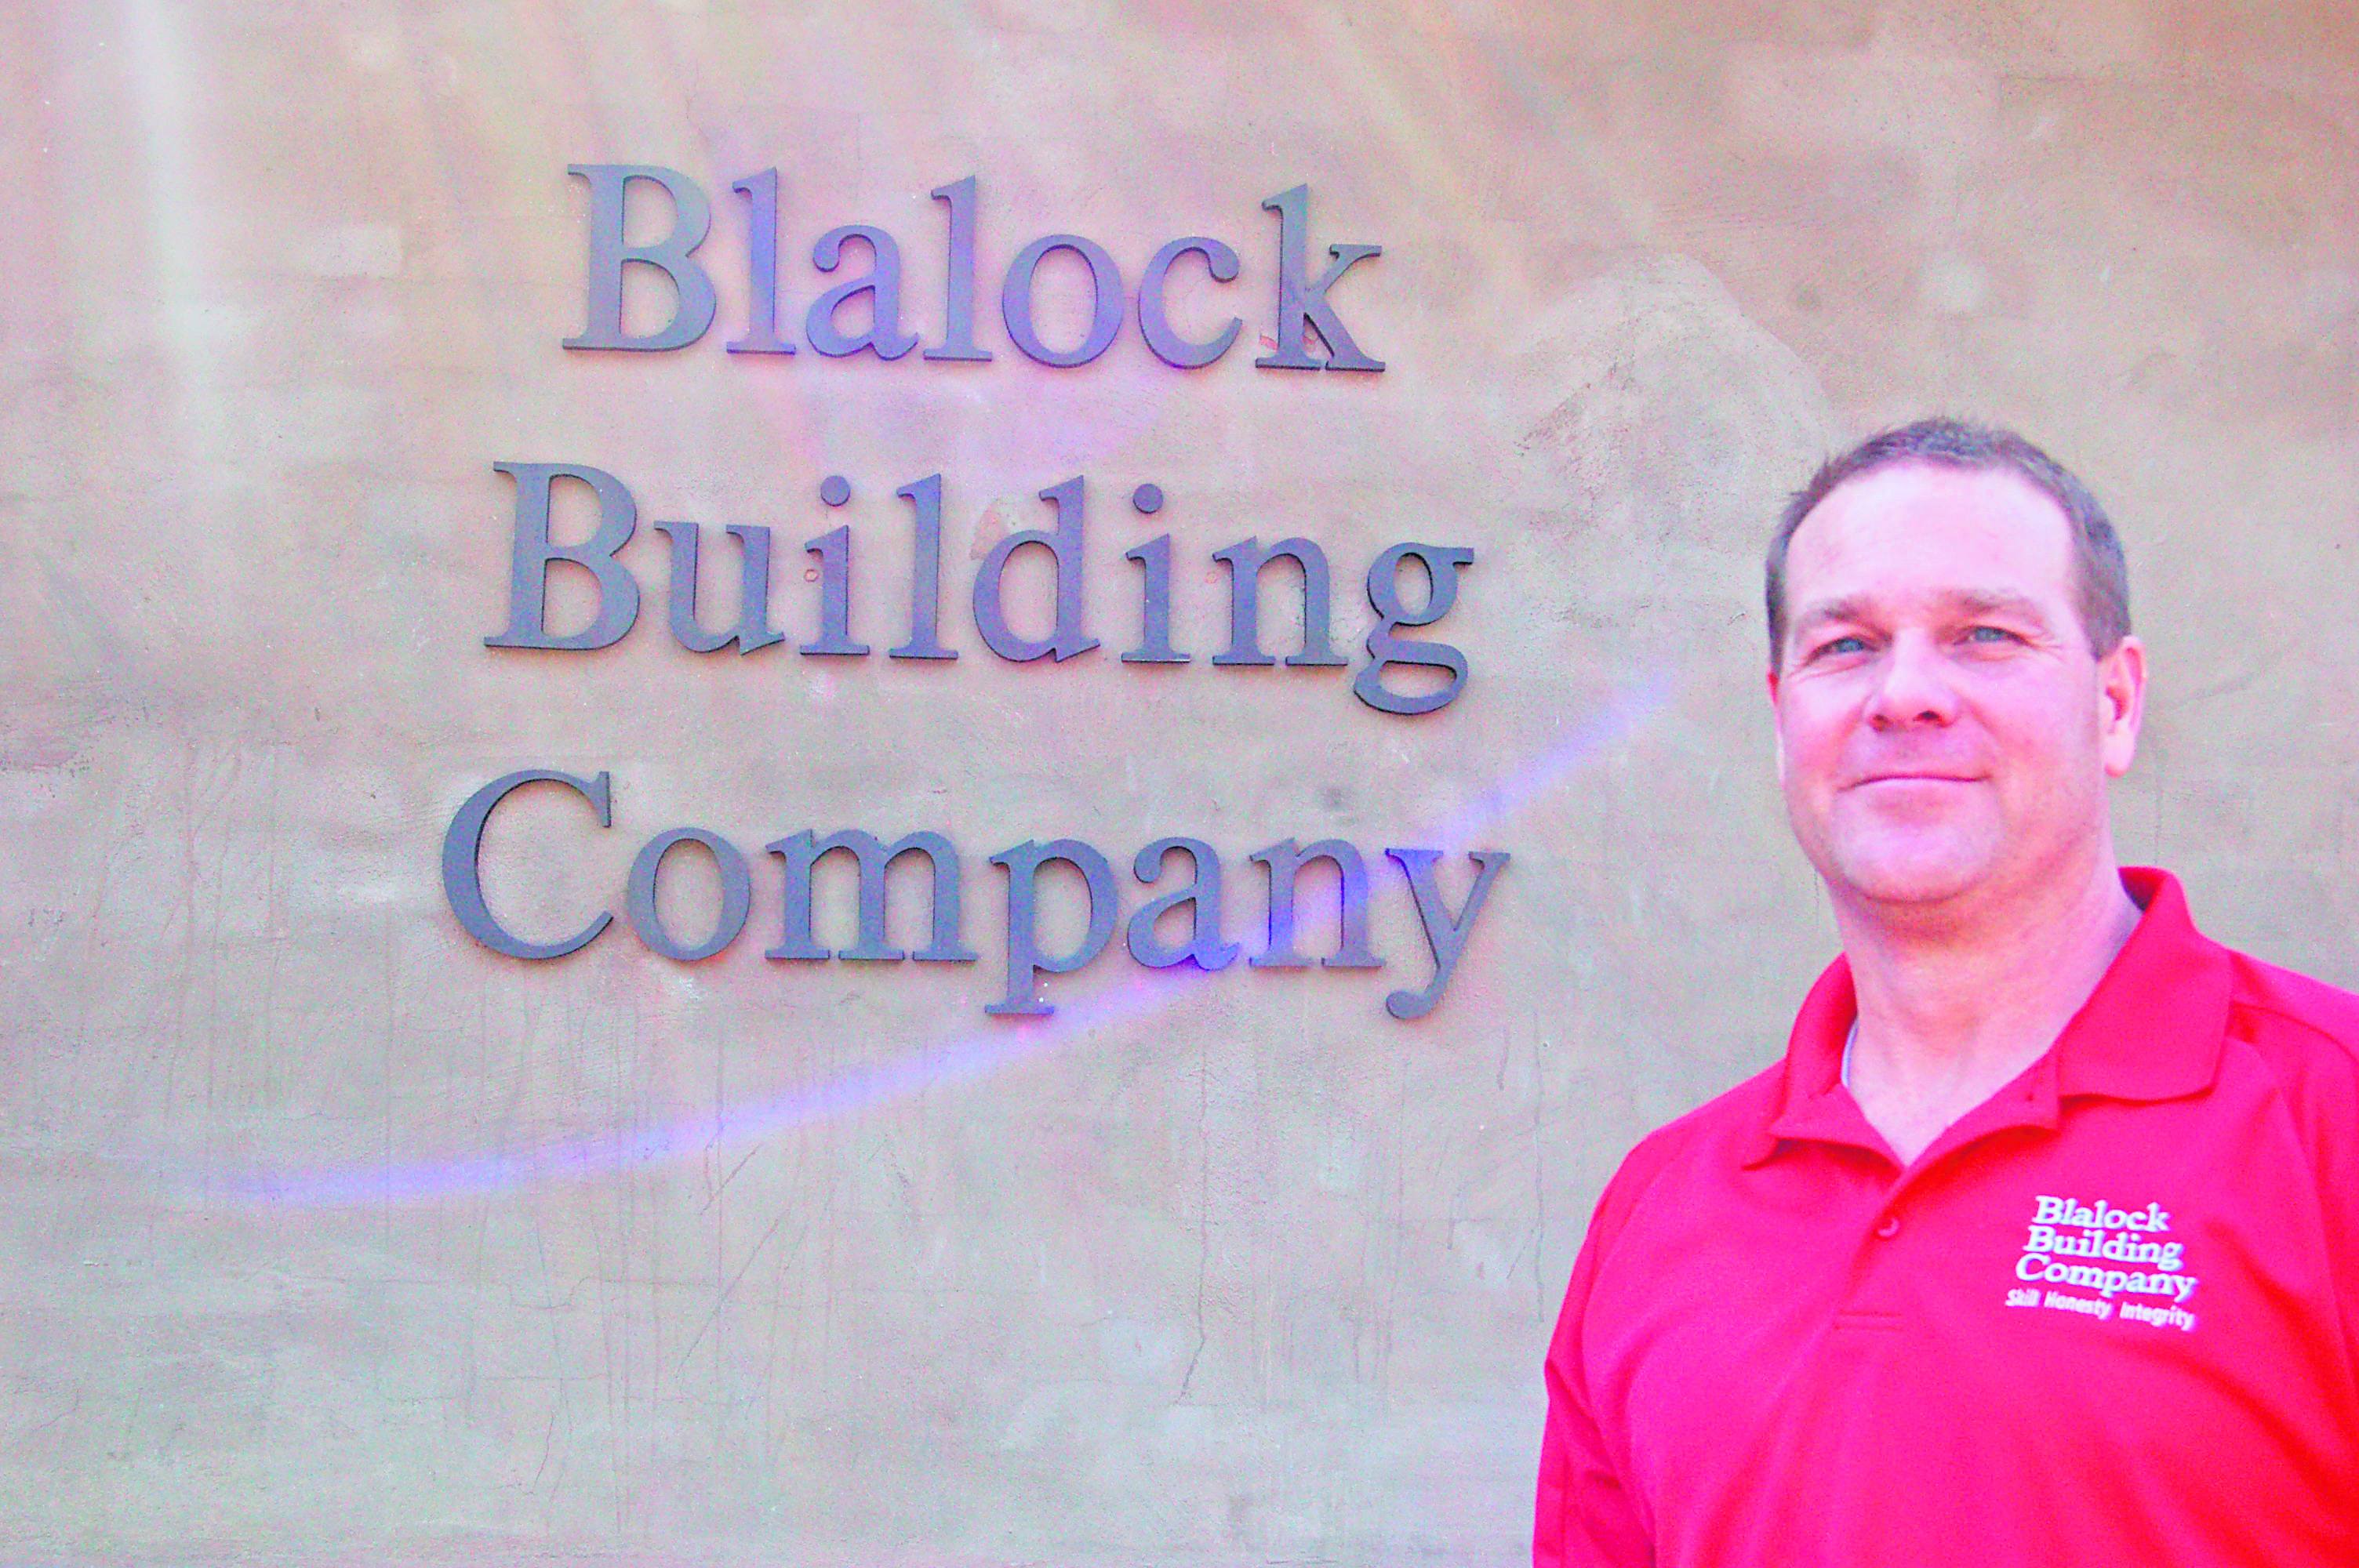 Blalock Building Company runs construction business across the country from Trussville